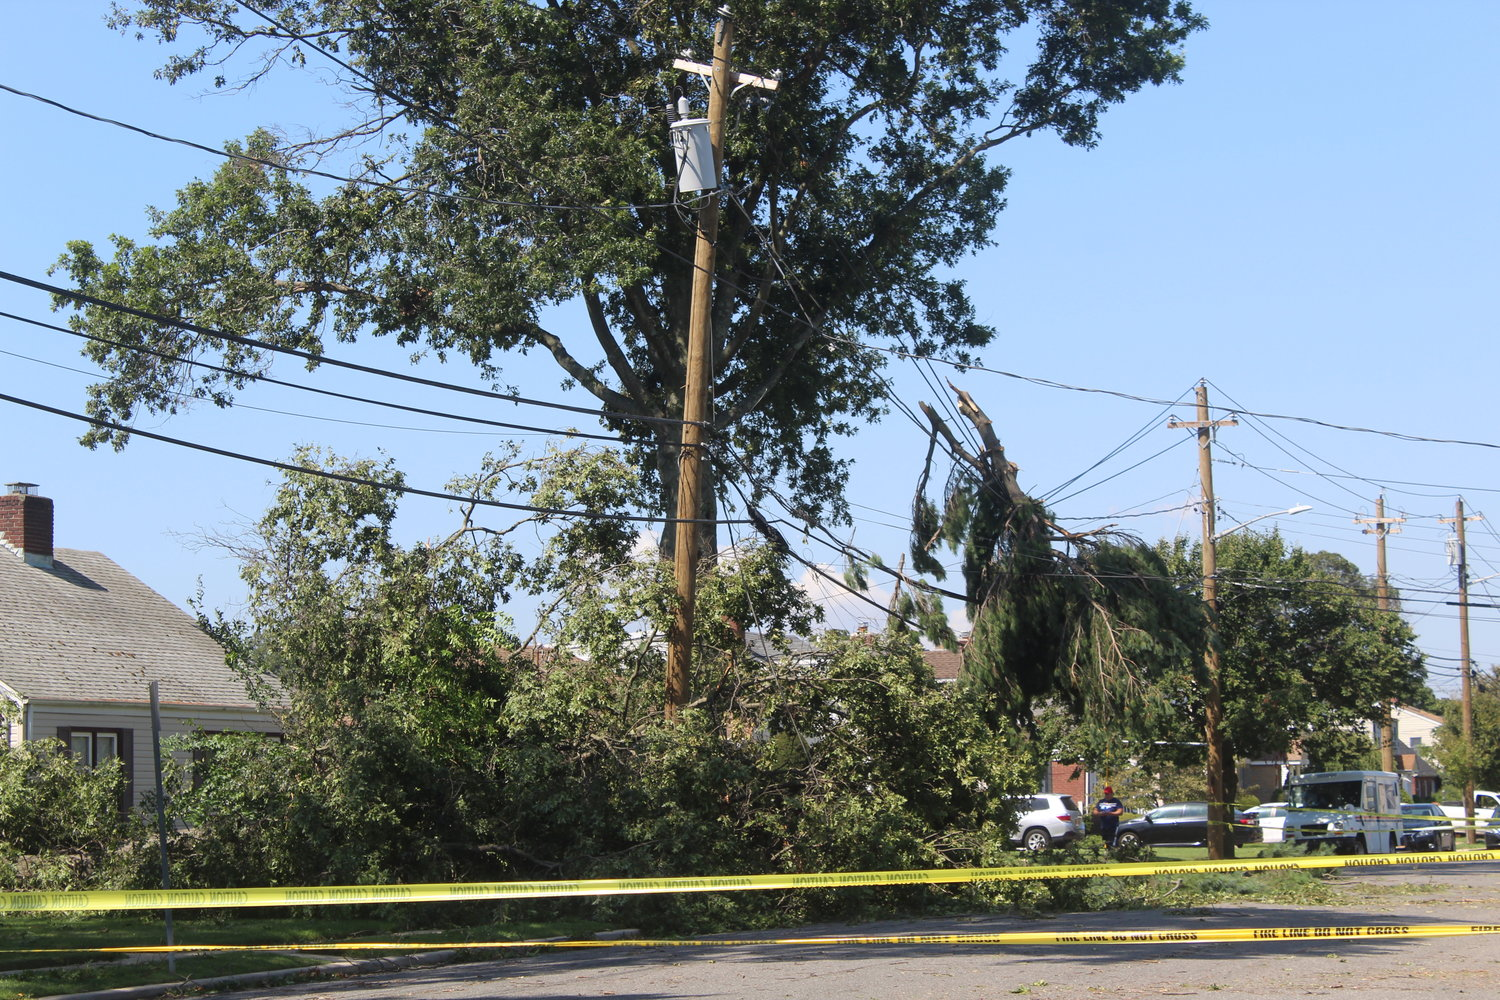 A tree fell into a power line near the Wesley United Methodist Church, blocking off part of Fenworth Boulevard.